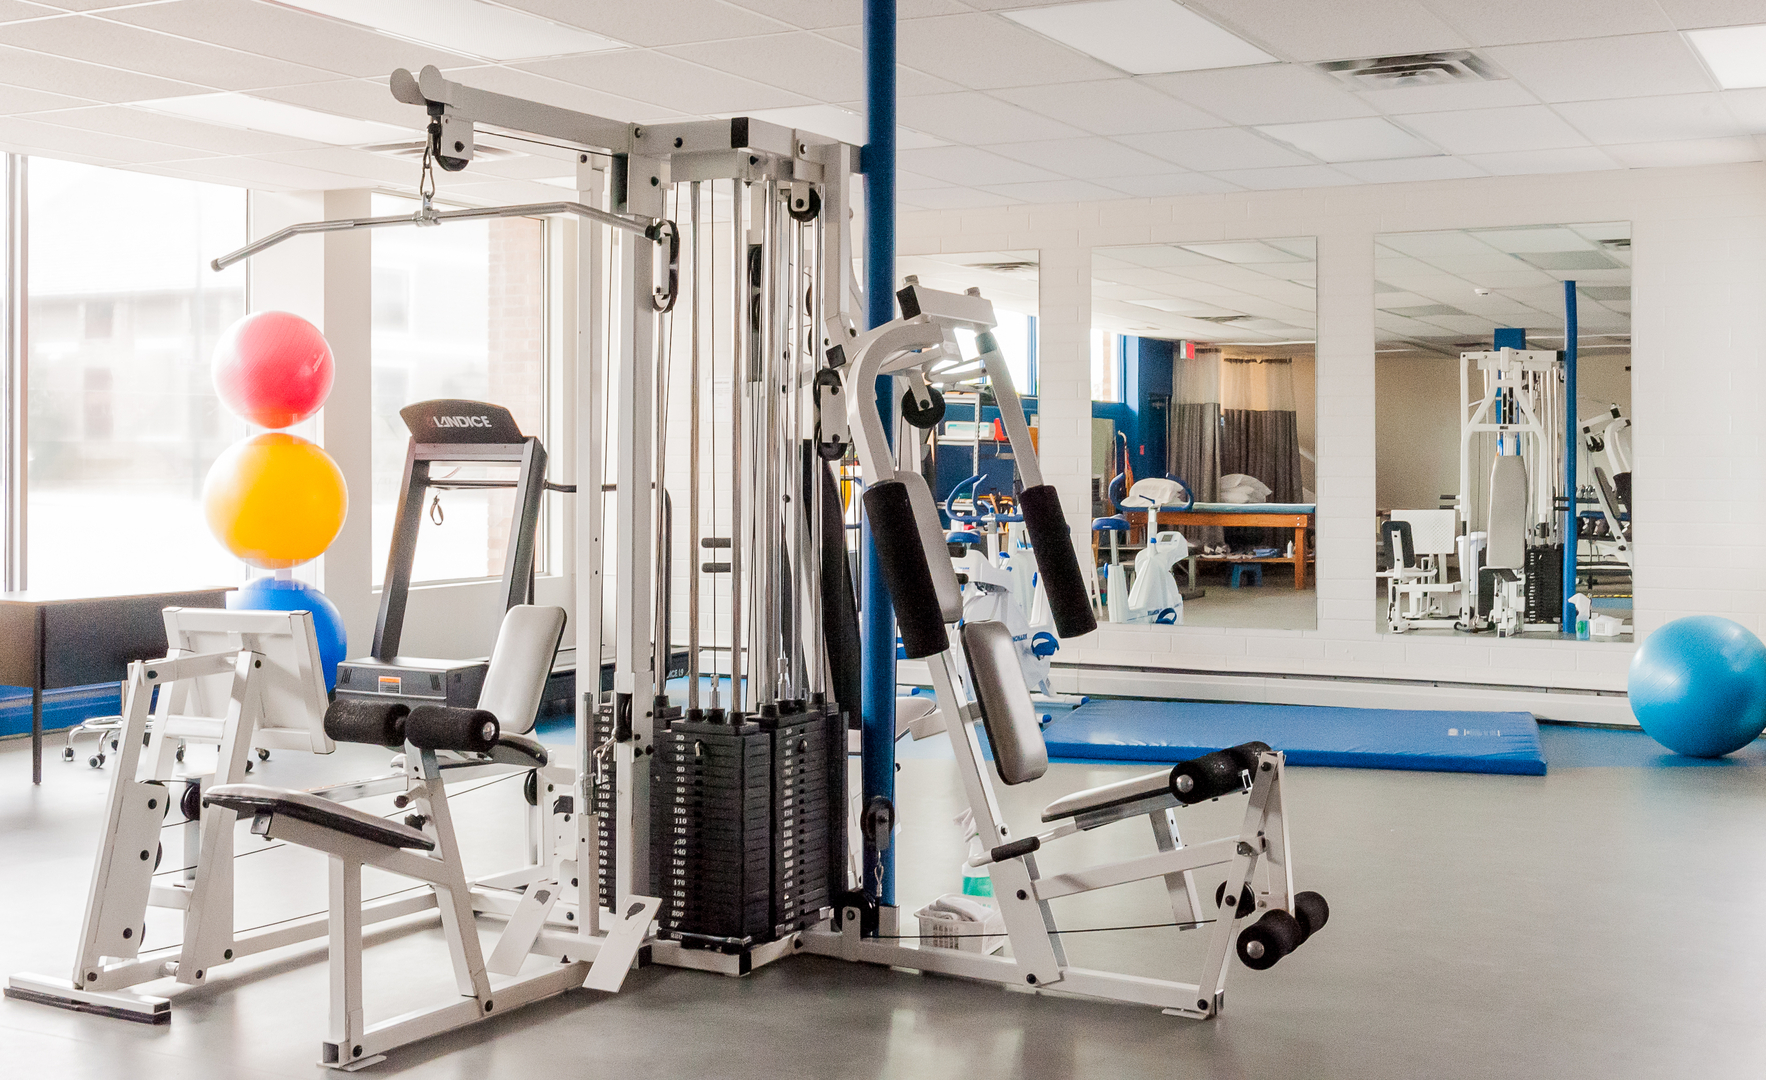 Physical Therapy Equipment Market by Demand, Sales, Regional Insight and Forecast by 2024